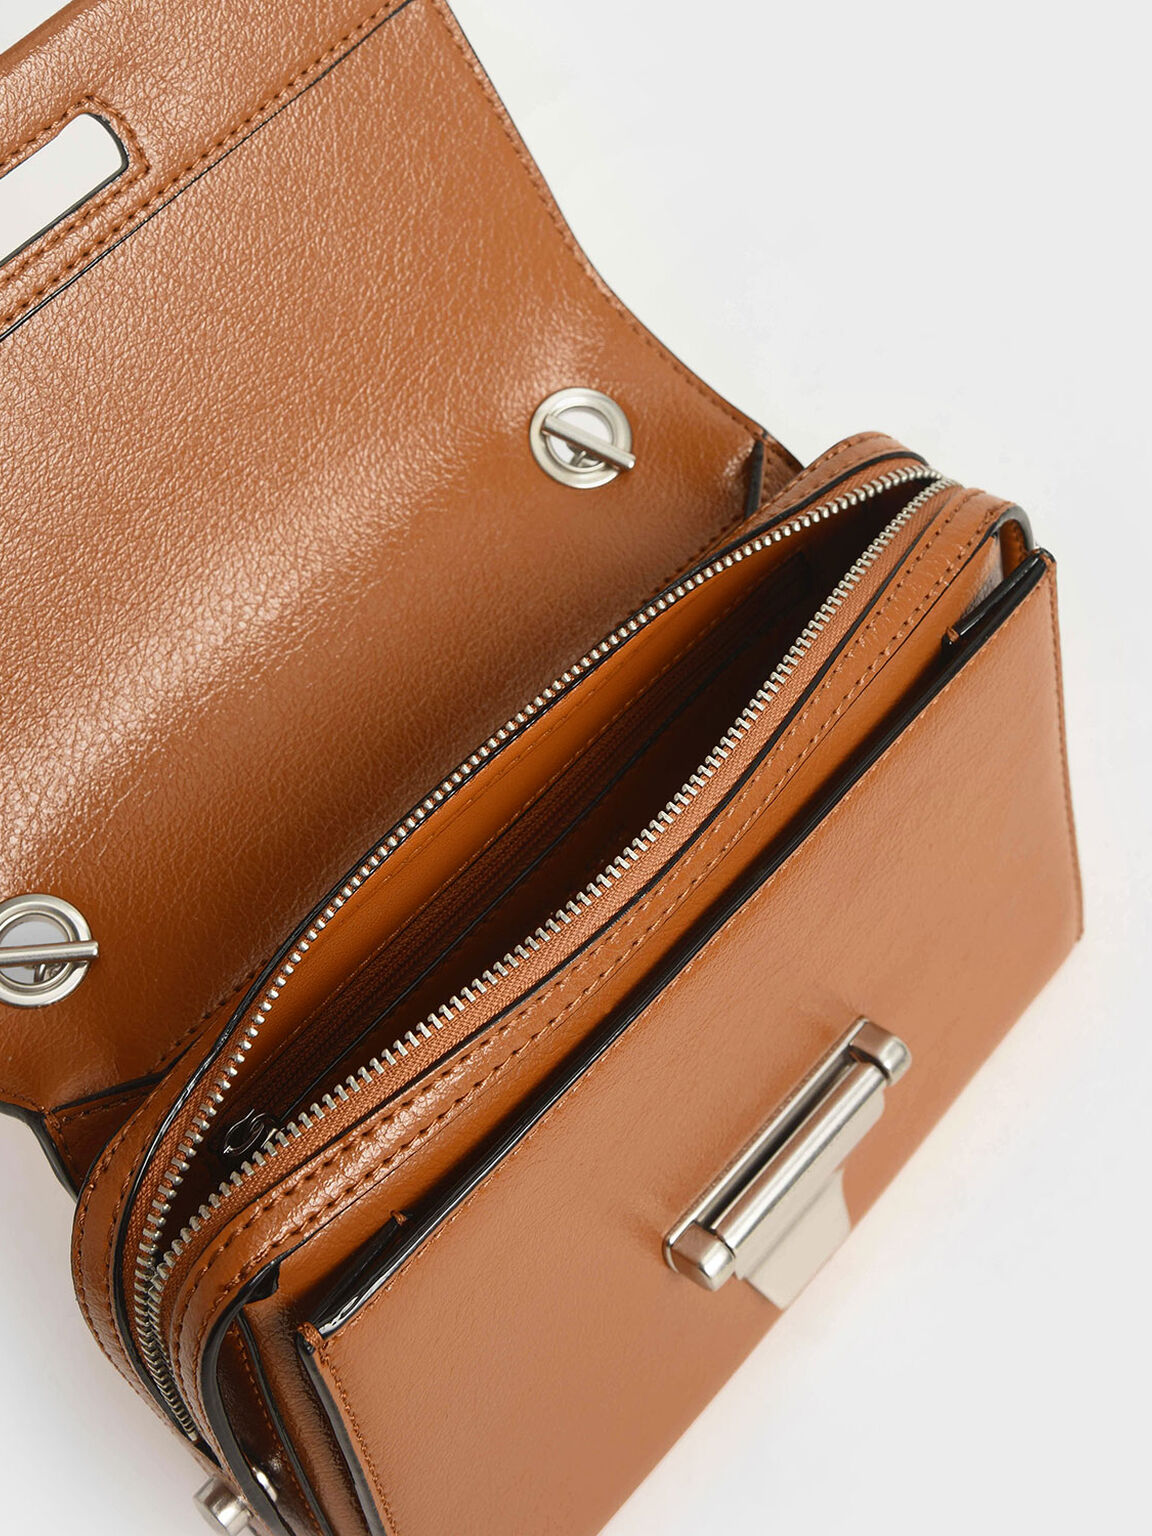 Metal Push-Lock Crossbody Bag, Cognac, hi-res